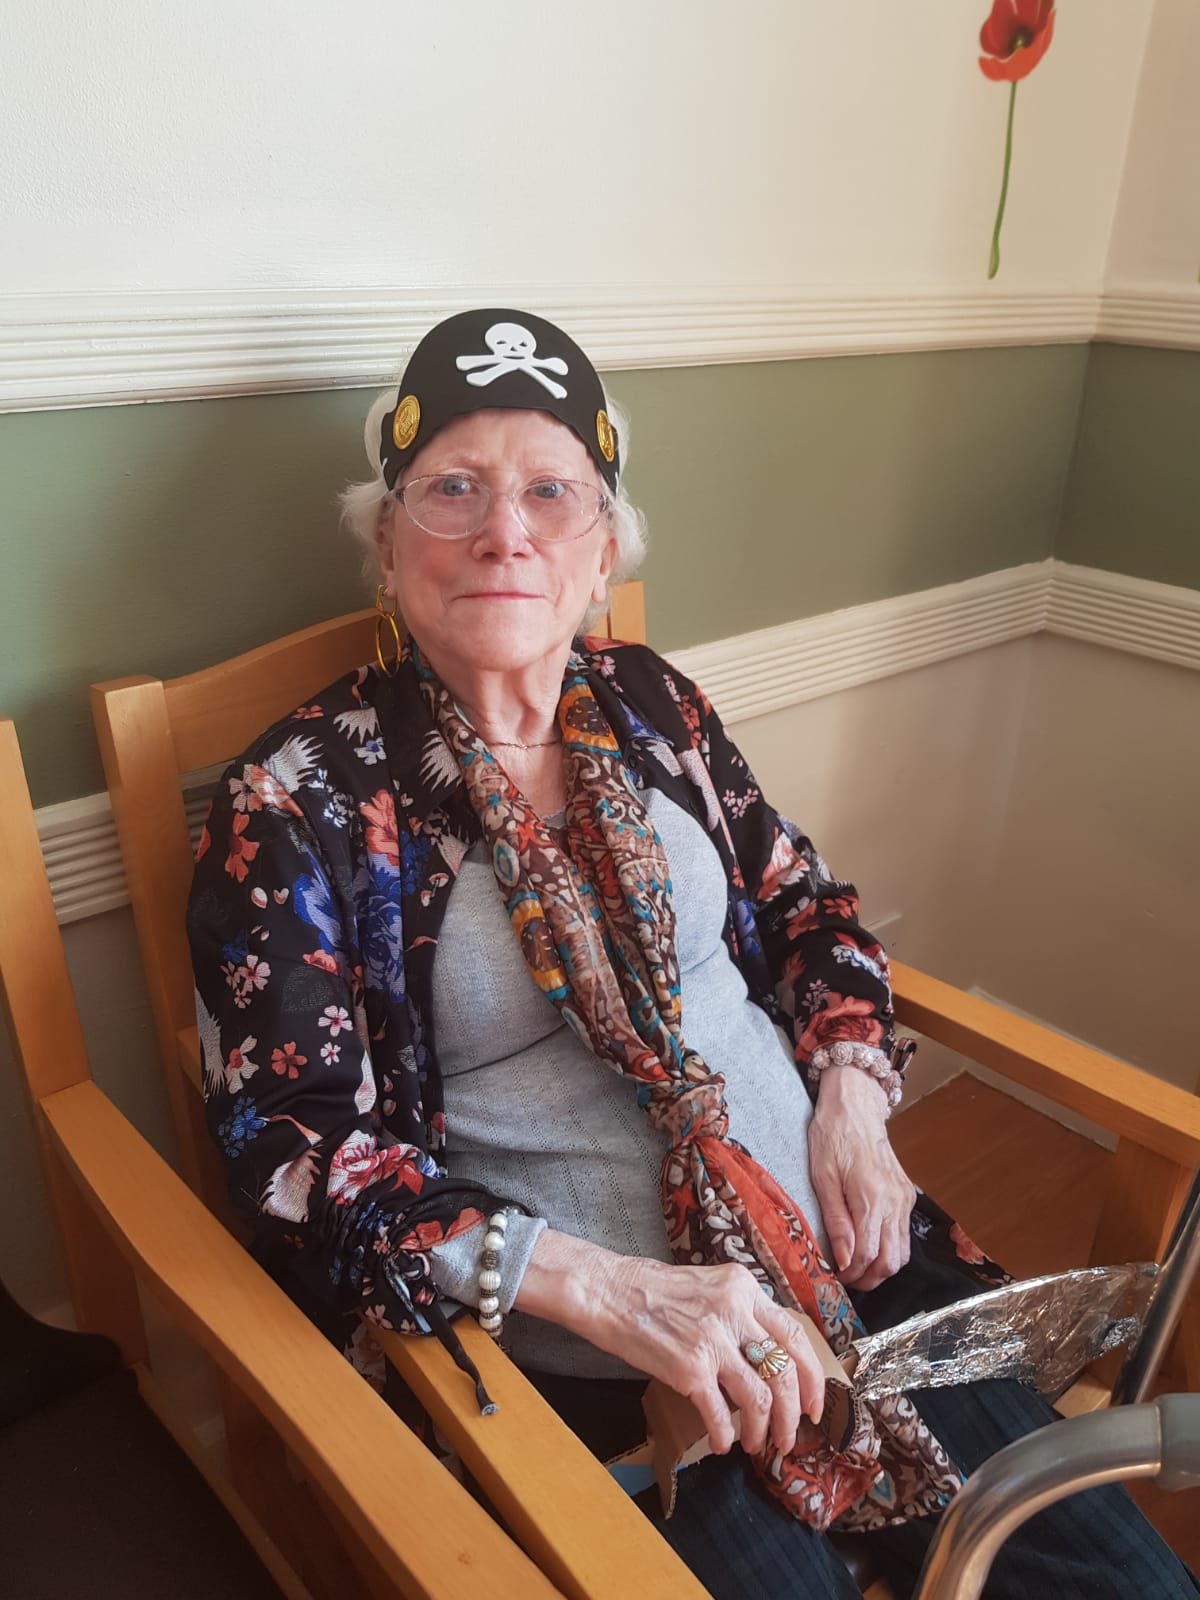 Elizabeth Court Pirate: Key Healthcare is dedicated to caring for elderly residents in safe. We have multiple dementia care homes including our care home middlesbrough, our care home St. Helen and care home saltburn. We excel in monitoring and improving care levels.